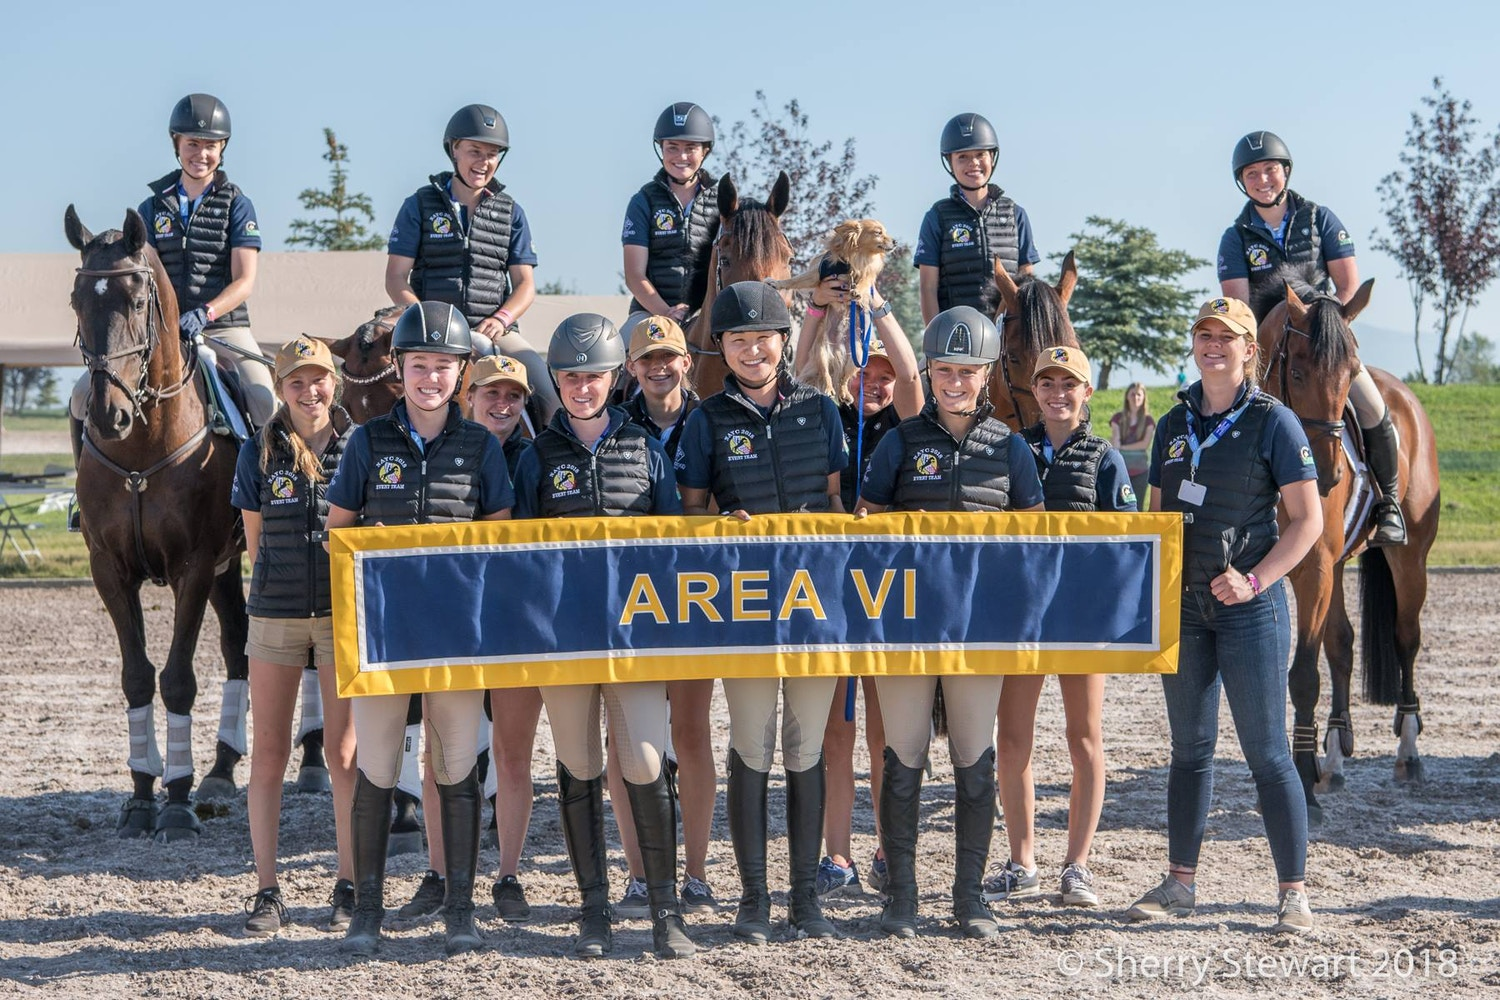 Bec Braitling & the Area VI Young Rider Program